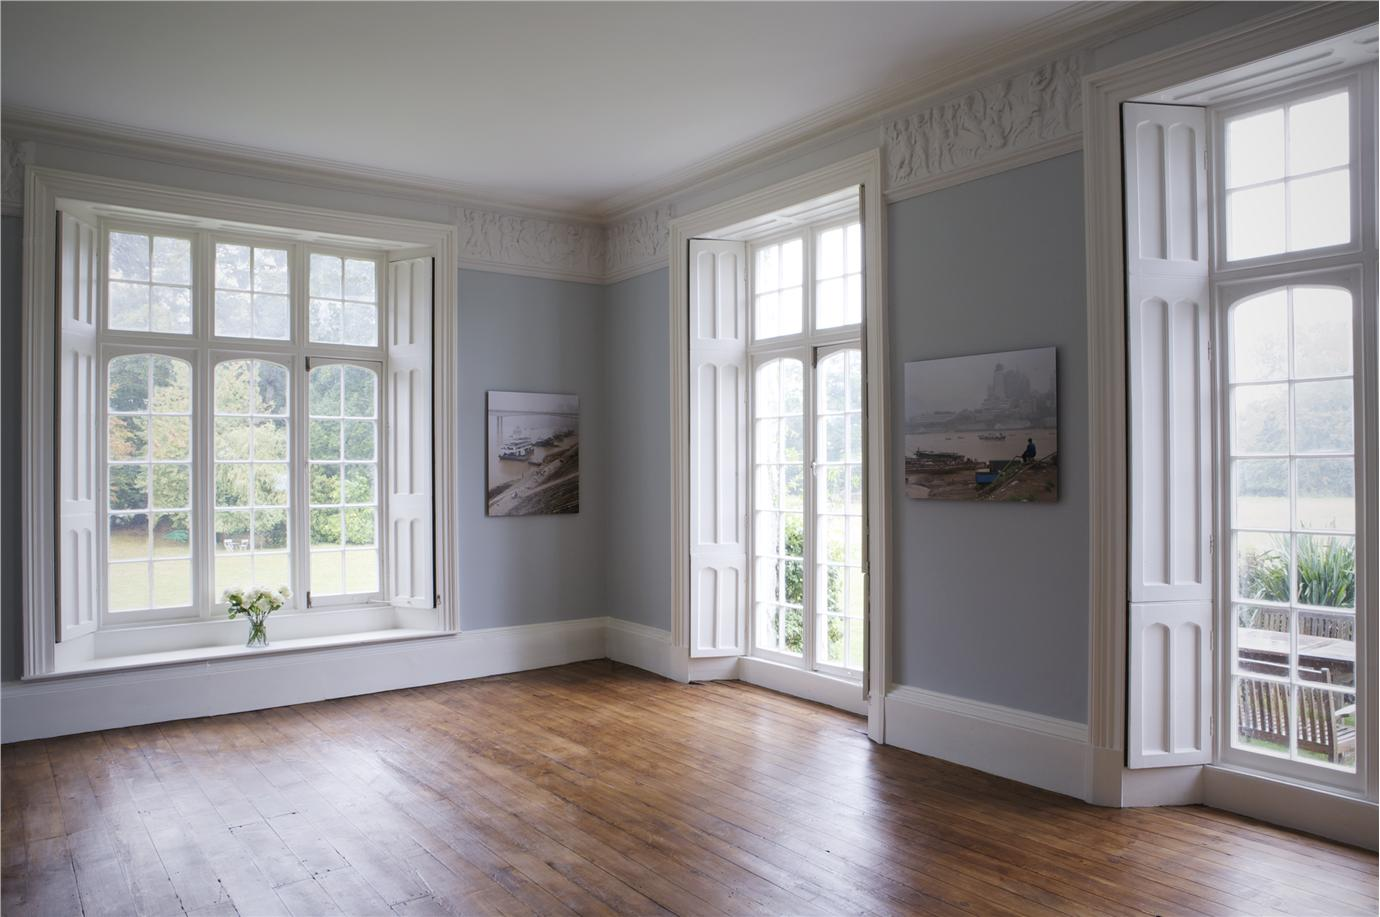 Heritage Paint Colours For Living Room And Bedroom